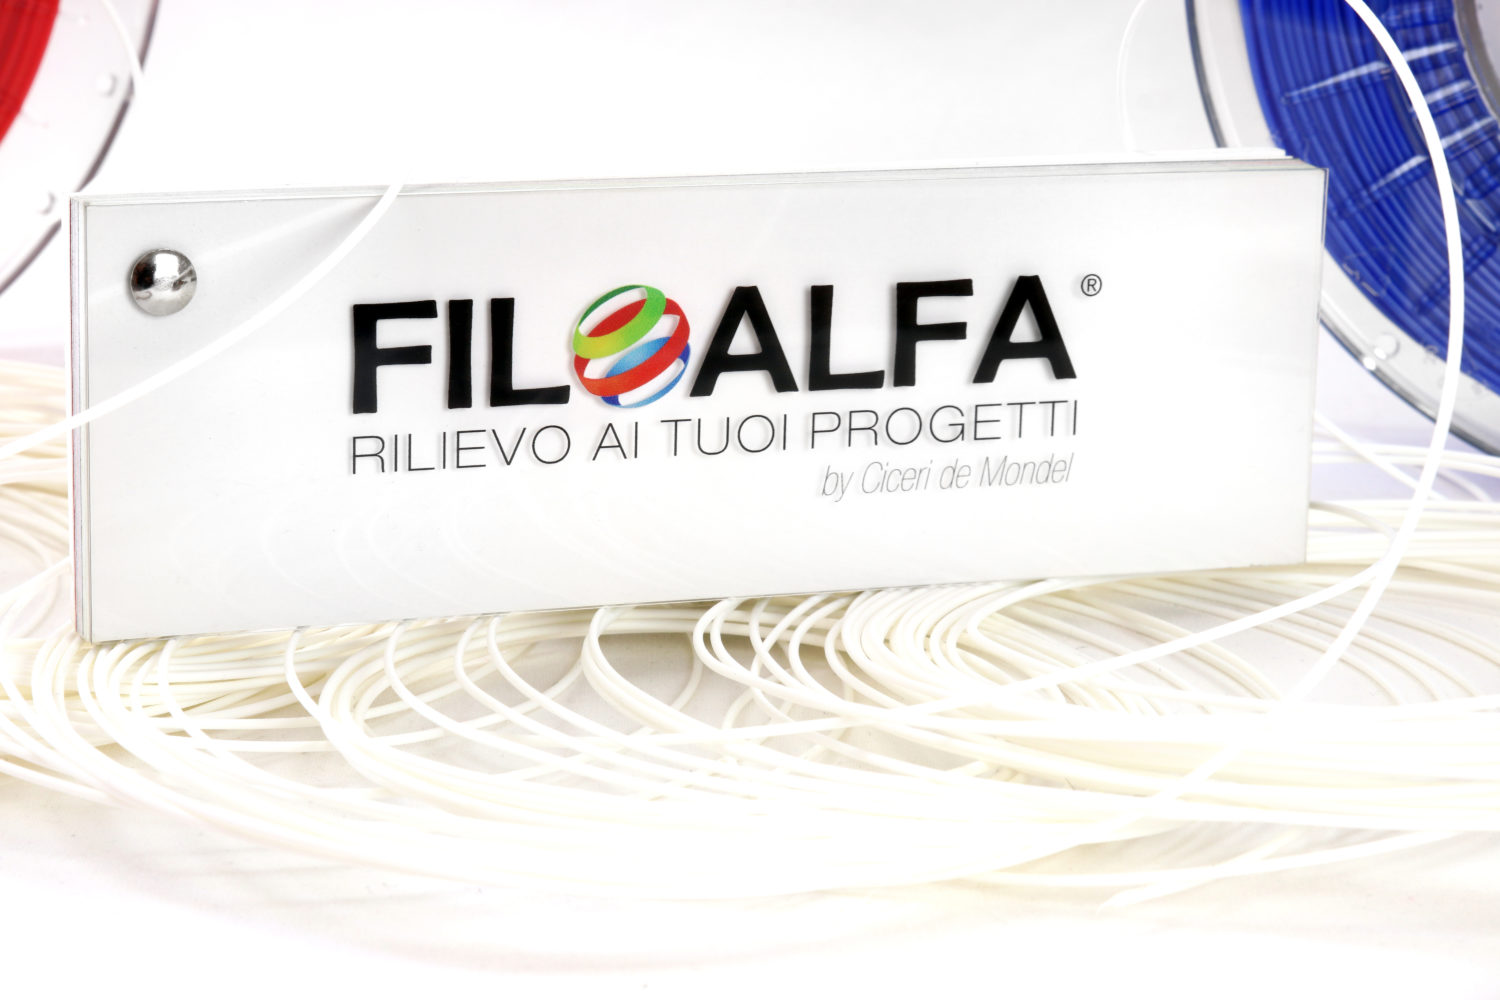 FILOALFA new Catalogue